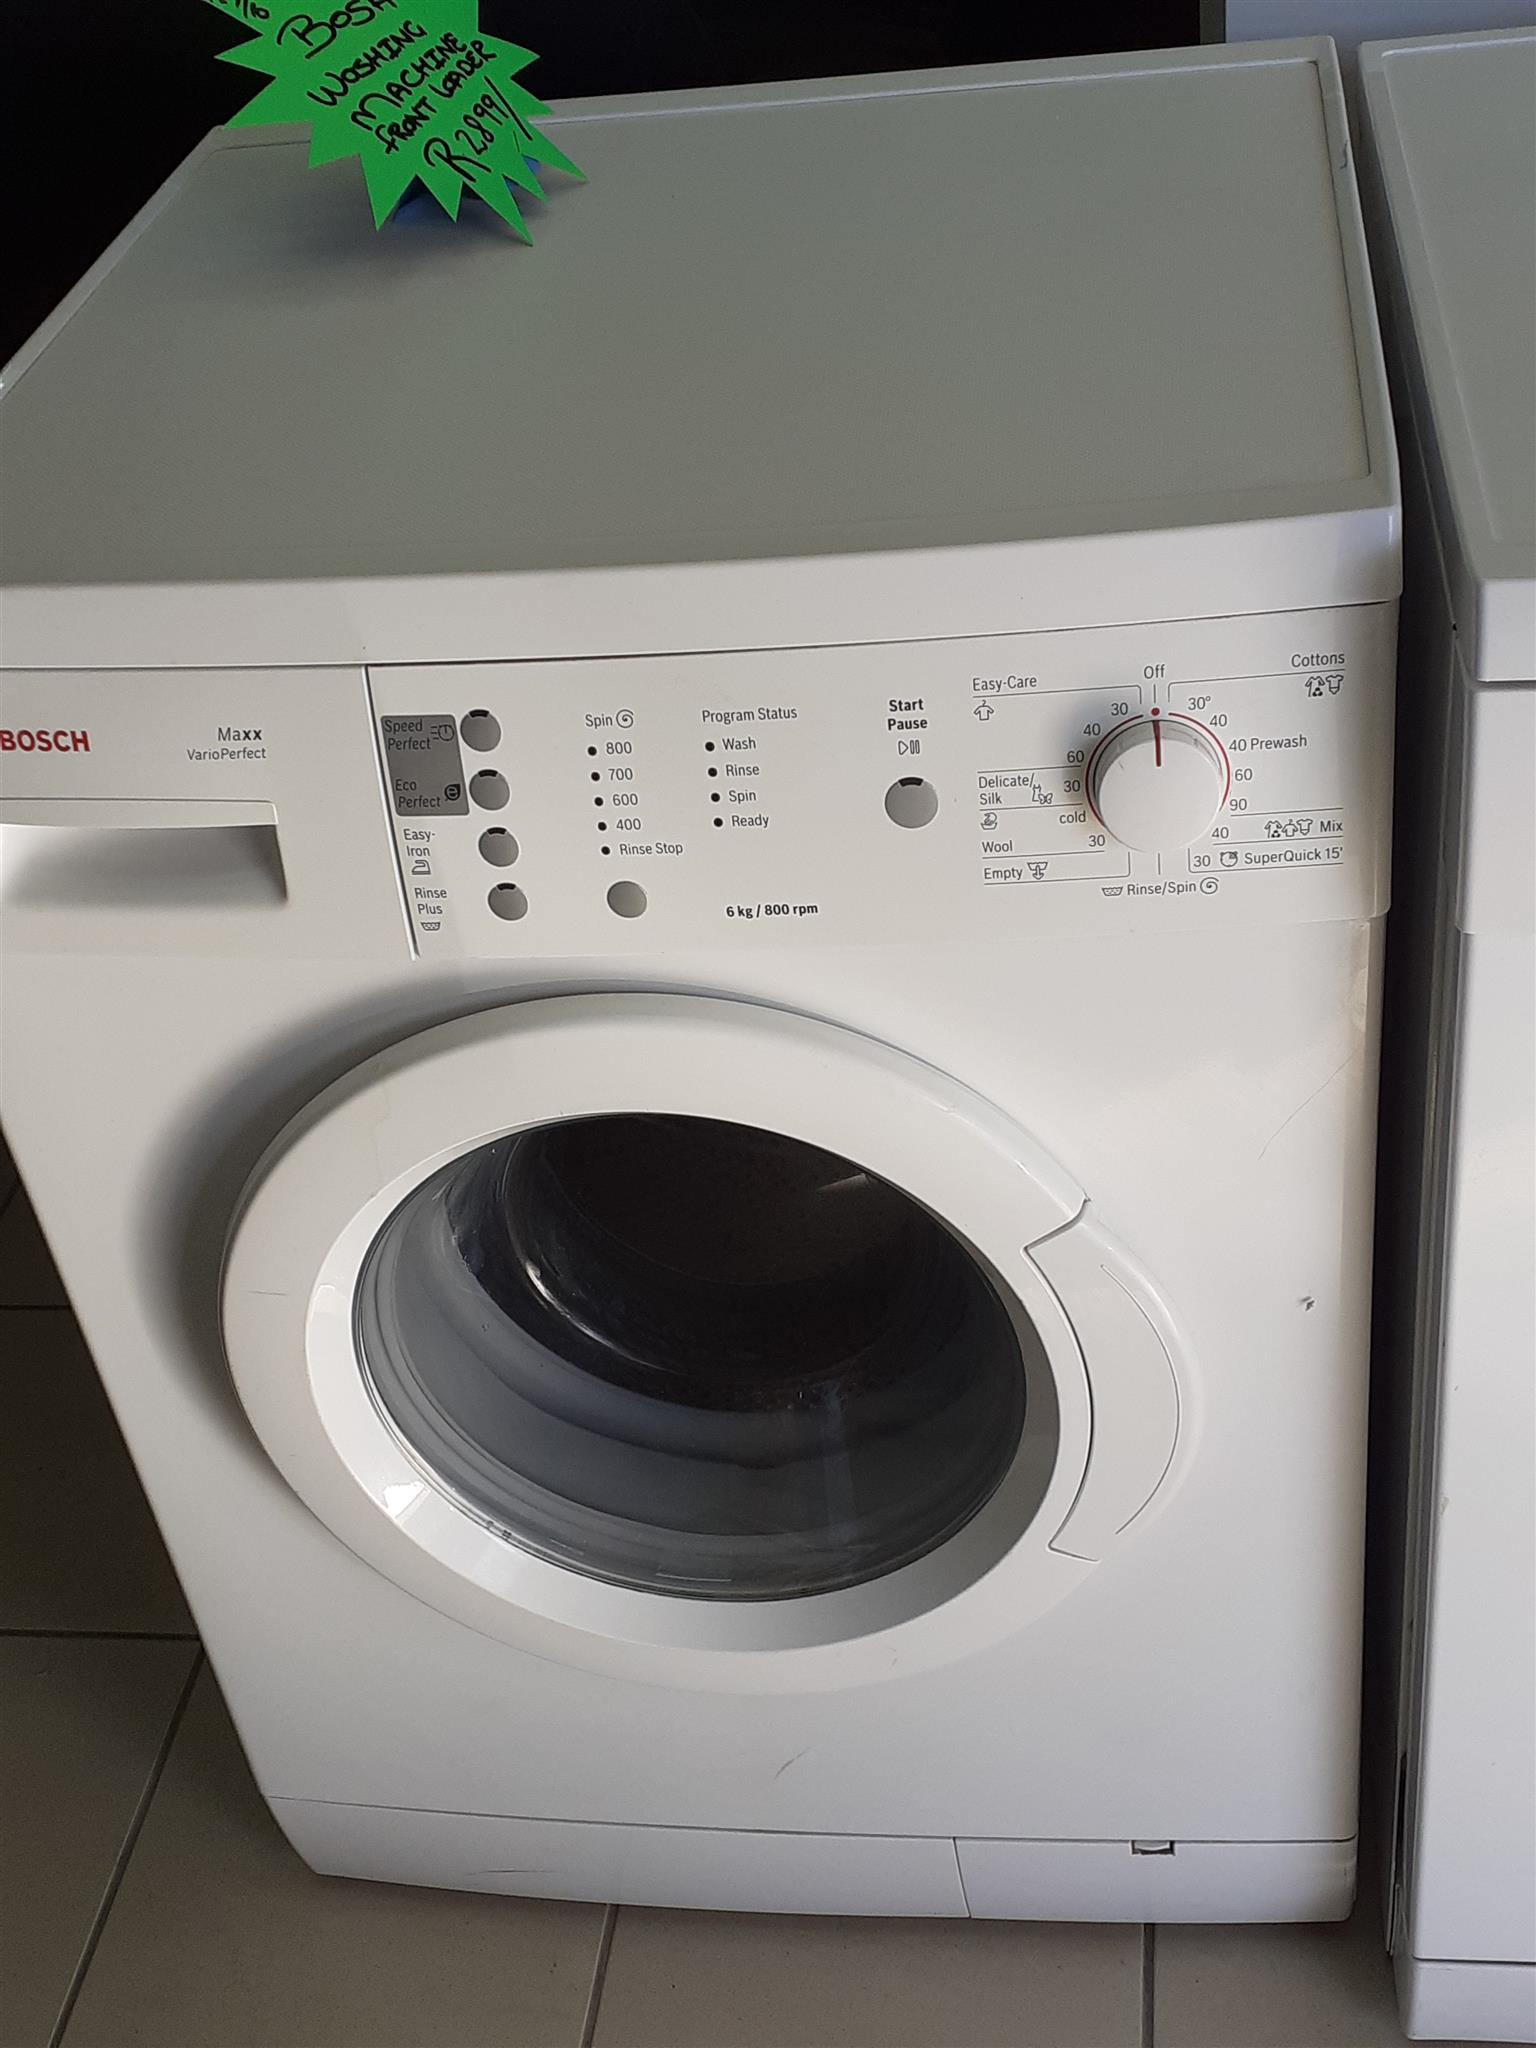 Bosch Washing machine 6kg.